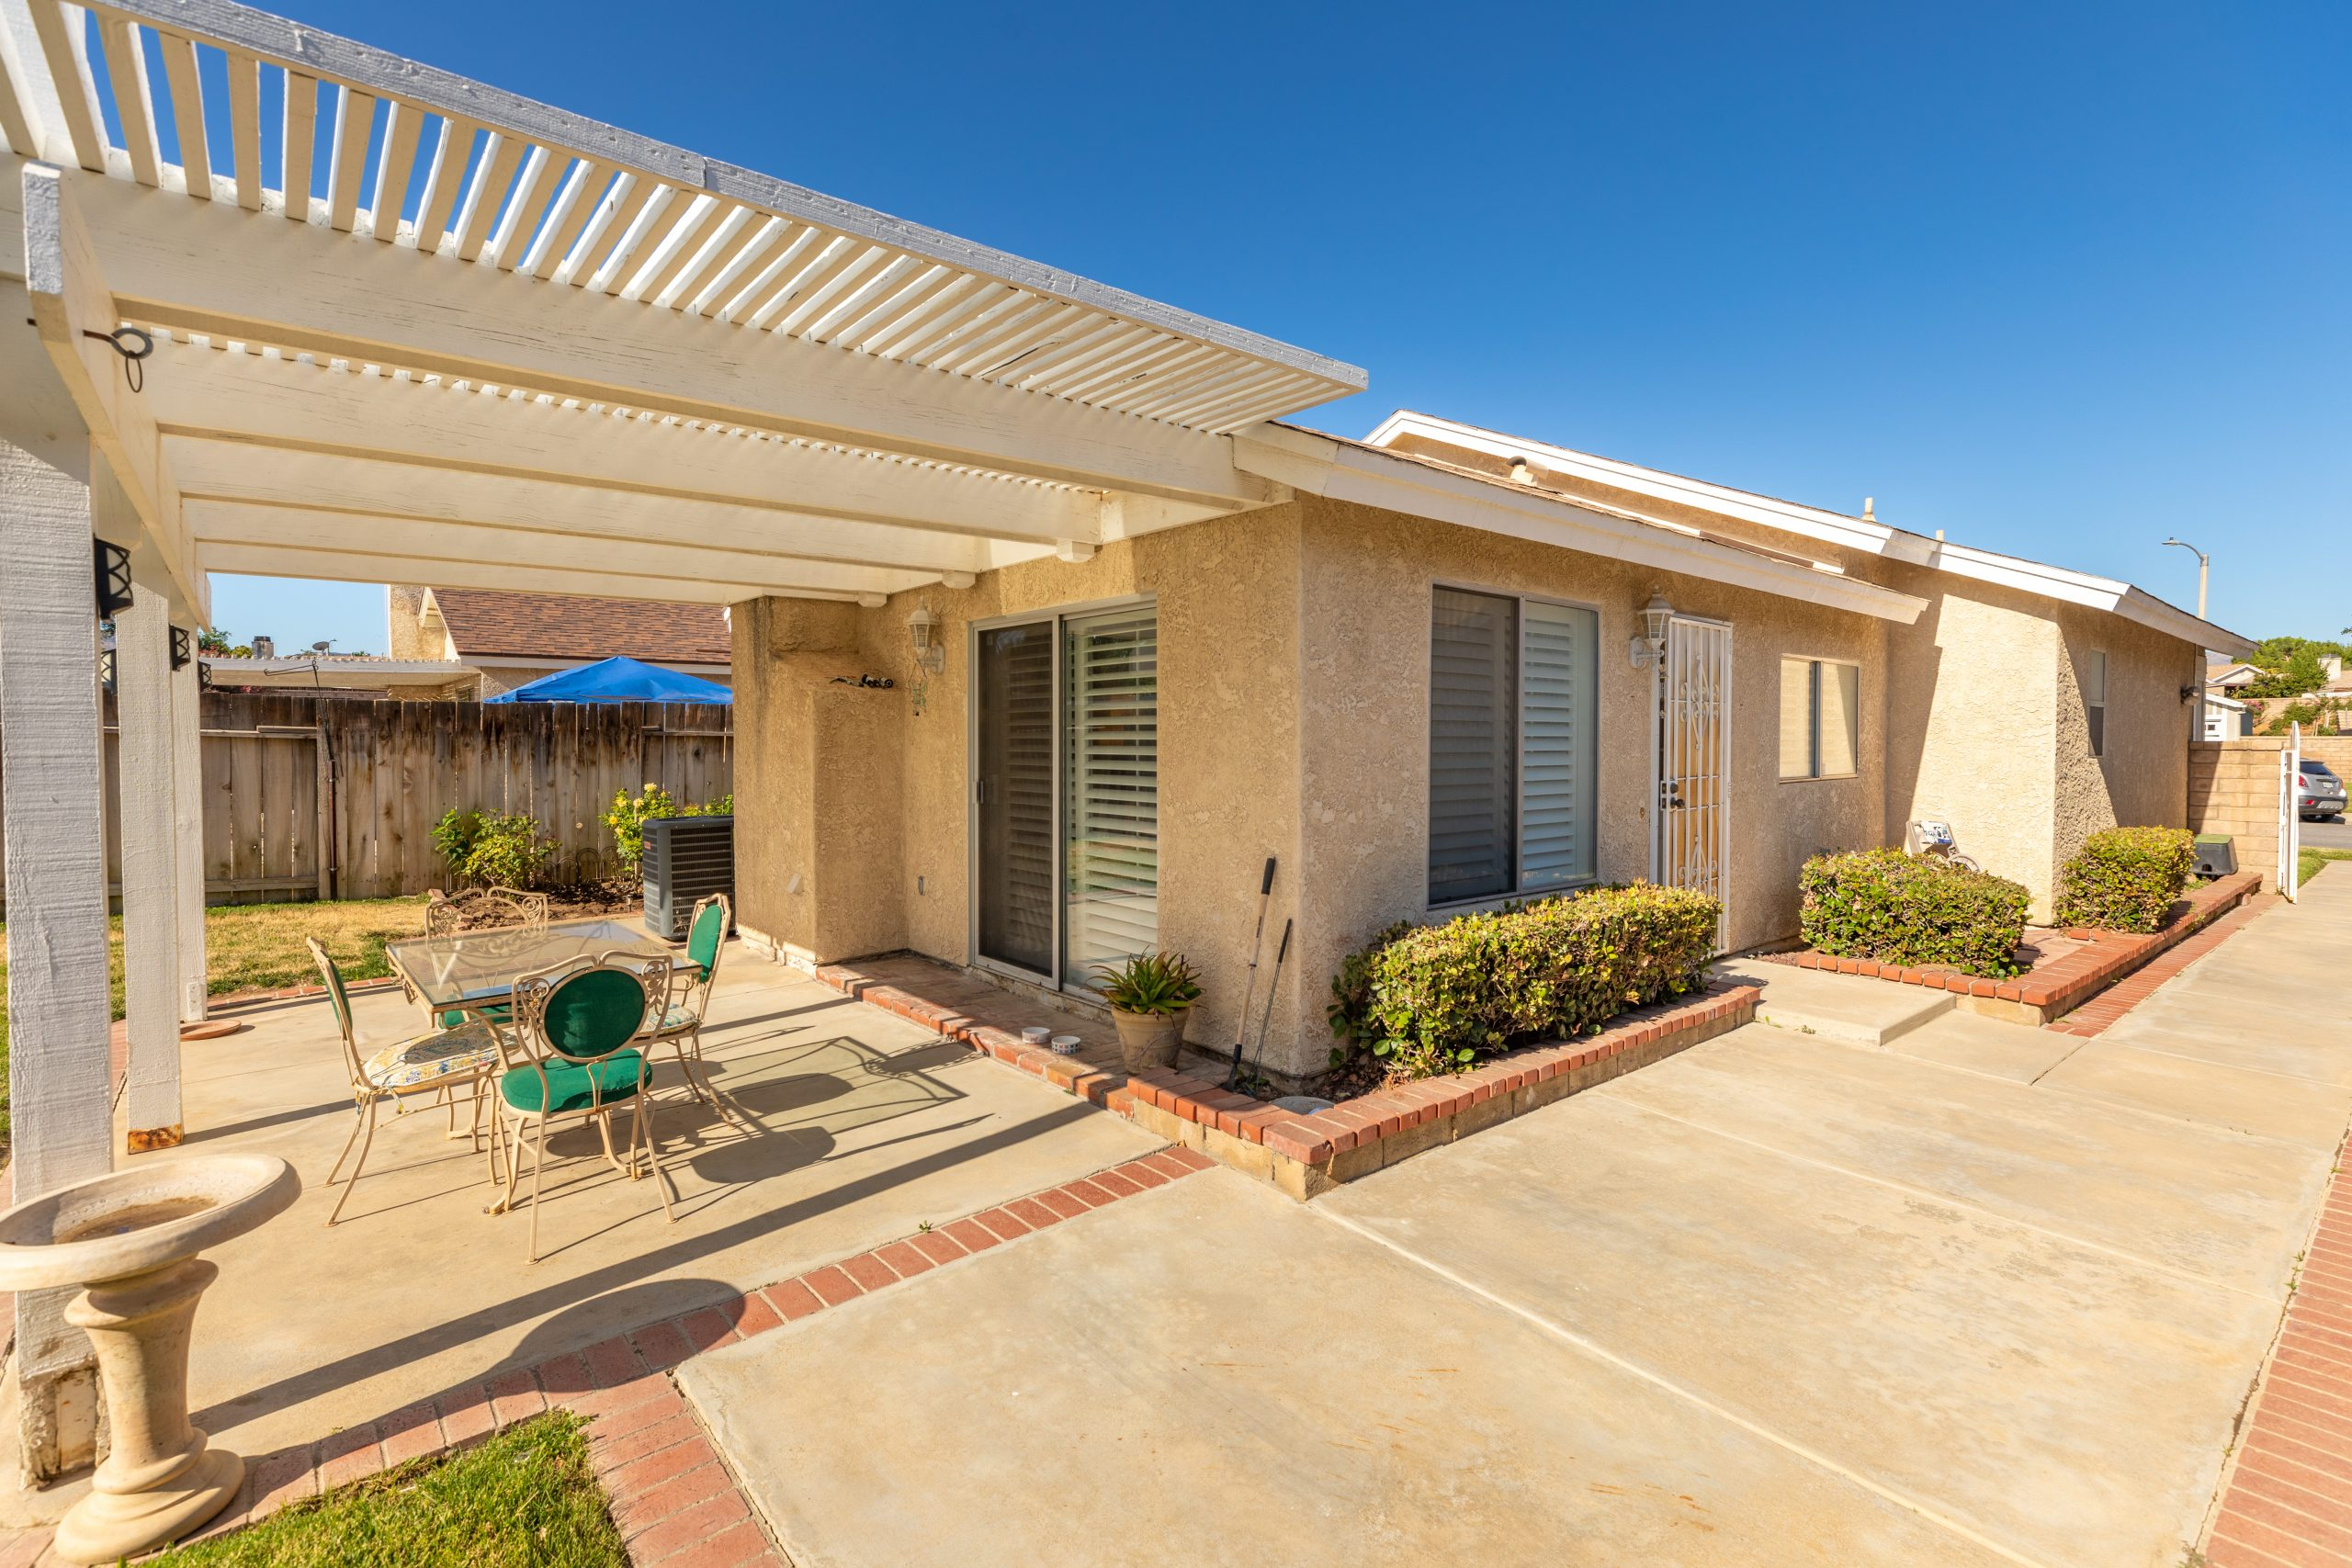 Palmdale CA Real Estate 37128 Marye Margo Circle Palmdale Covered Patio